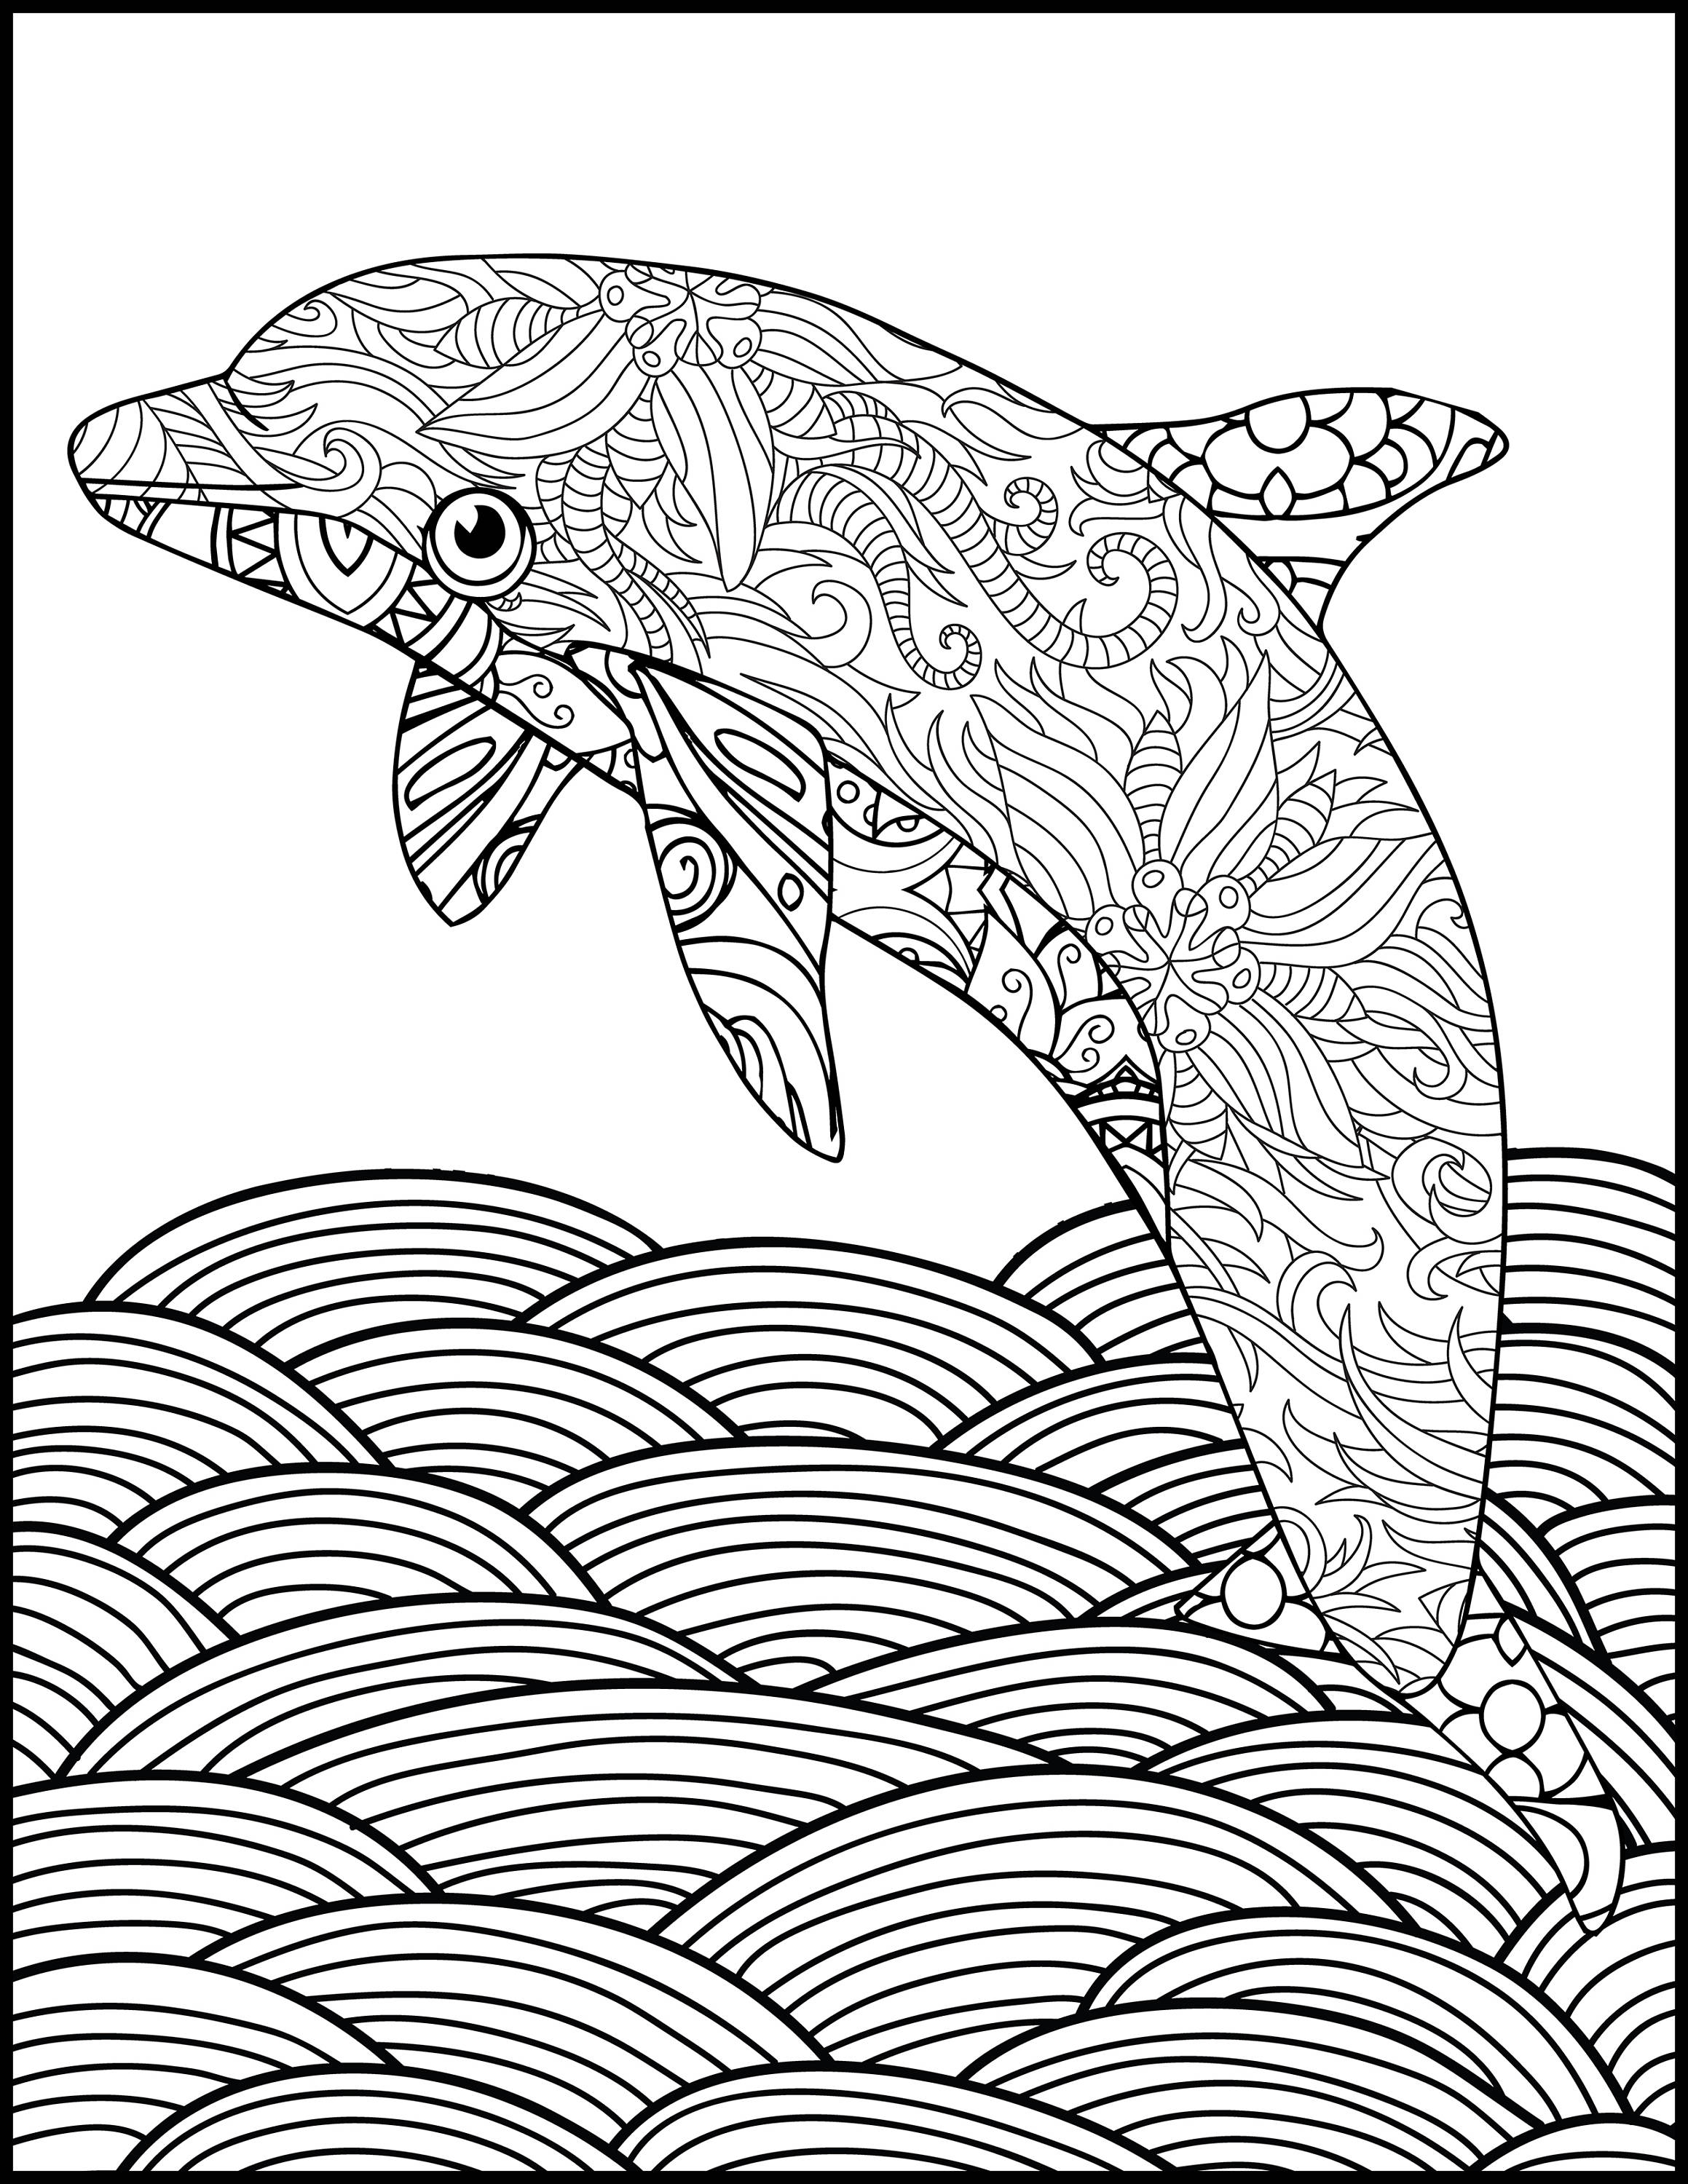 adult coloring pages animals printable coloring page adult coloring page dolphin etsy coloring animals adult pages